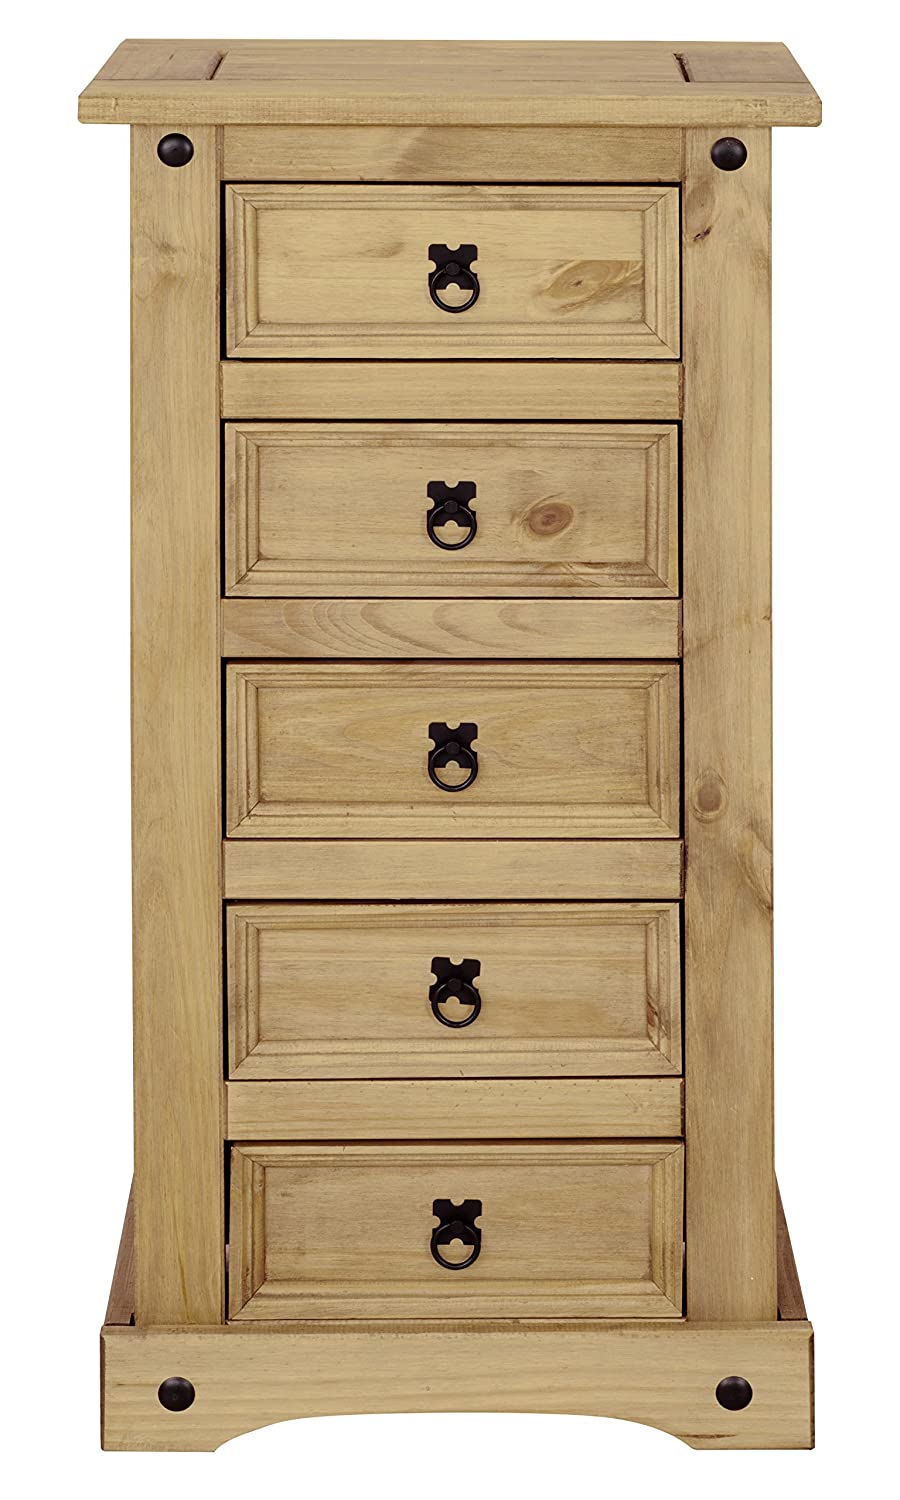 Corona 5 Drawer Narrow Chest, Tallboy, Mexican Pine Mews B00GJ0SLUG